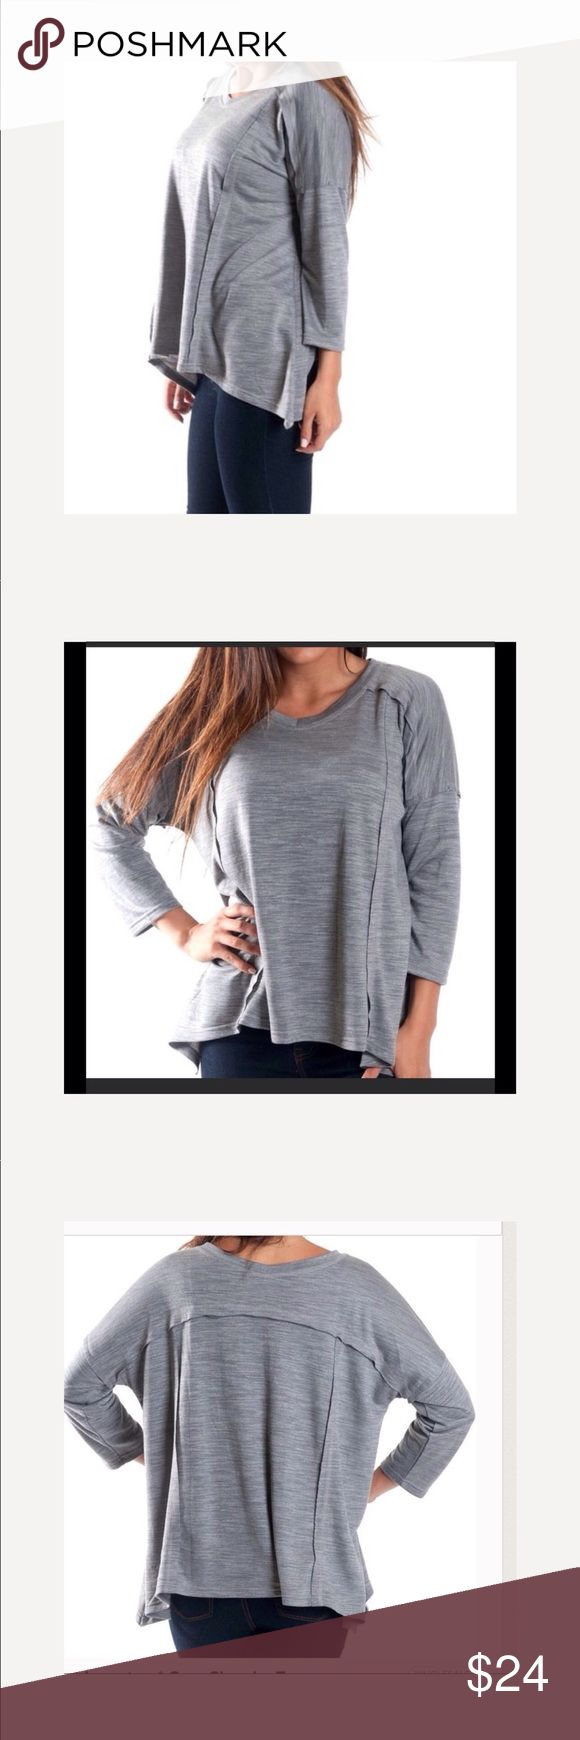 ❤️Grey Slouchy Top. NWT. Large This grey slouchy top is a perfect addition with leggings and your favorite scarf.   Fit: oversized, loose, boxy. V neck. 3/4 sleeve. 81% polyester. 19 % viscose.  Machine wash cold. Imported. Tops Tunics